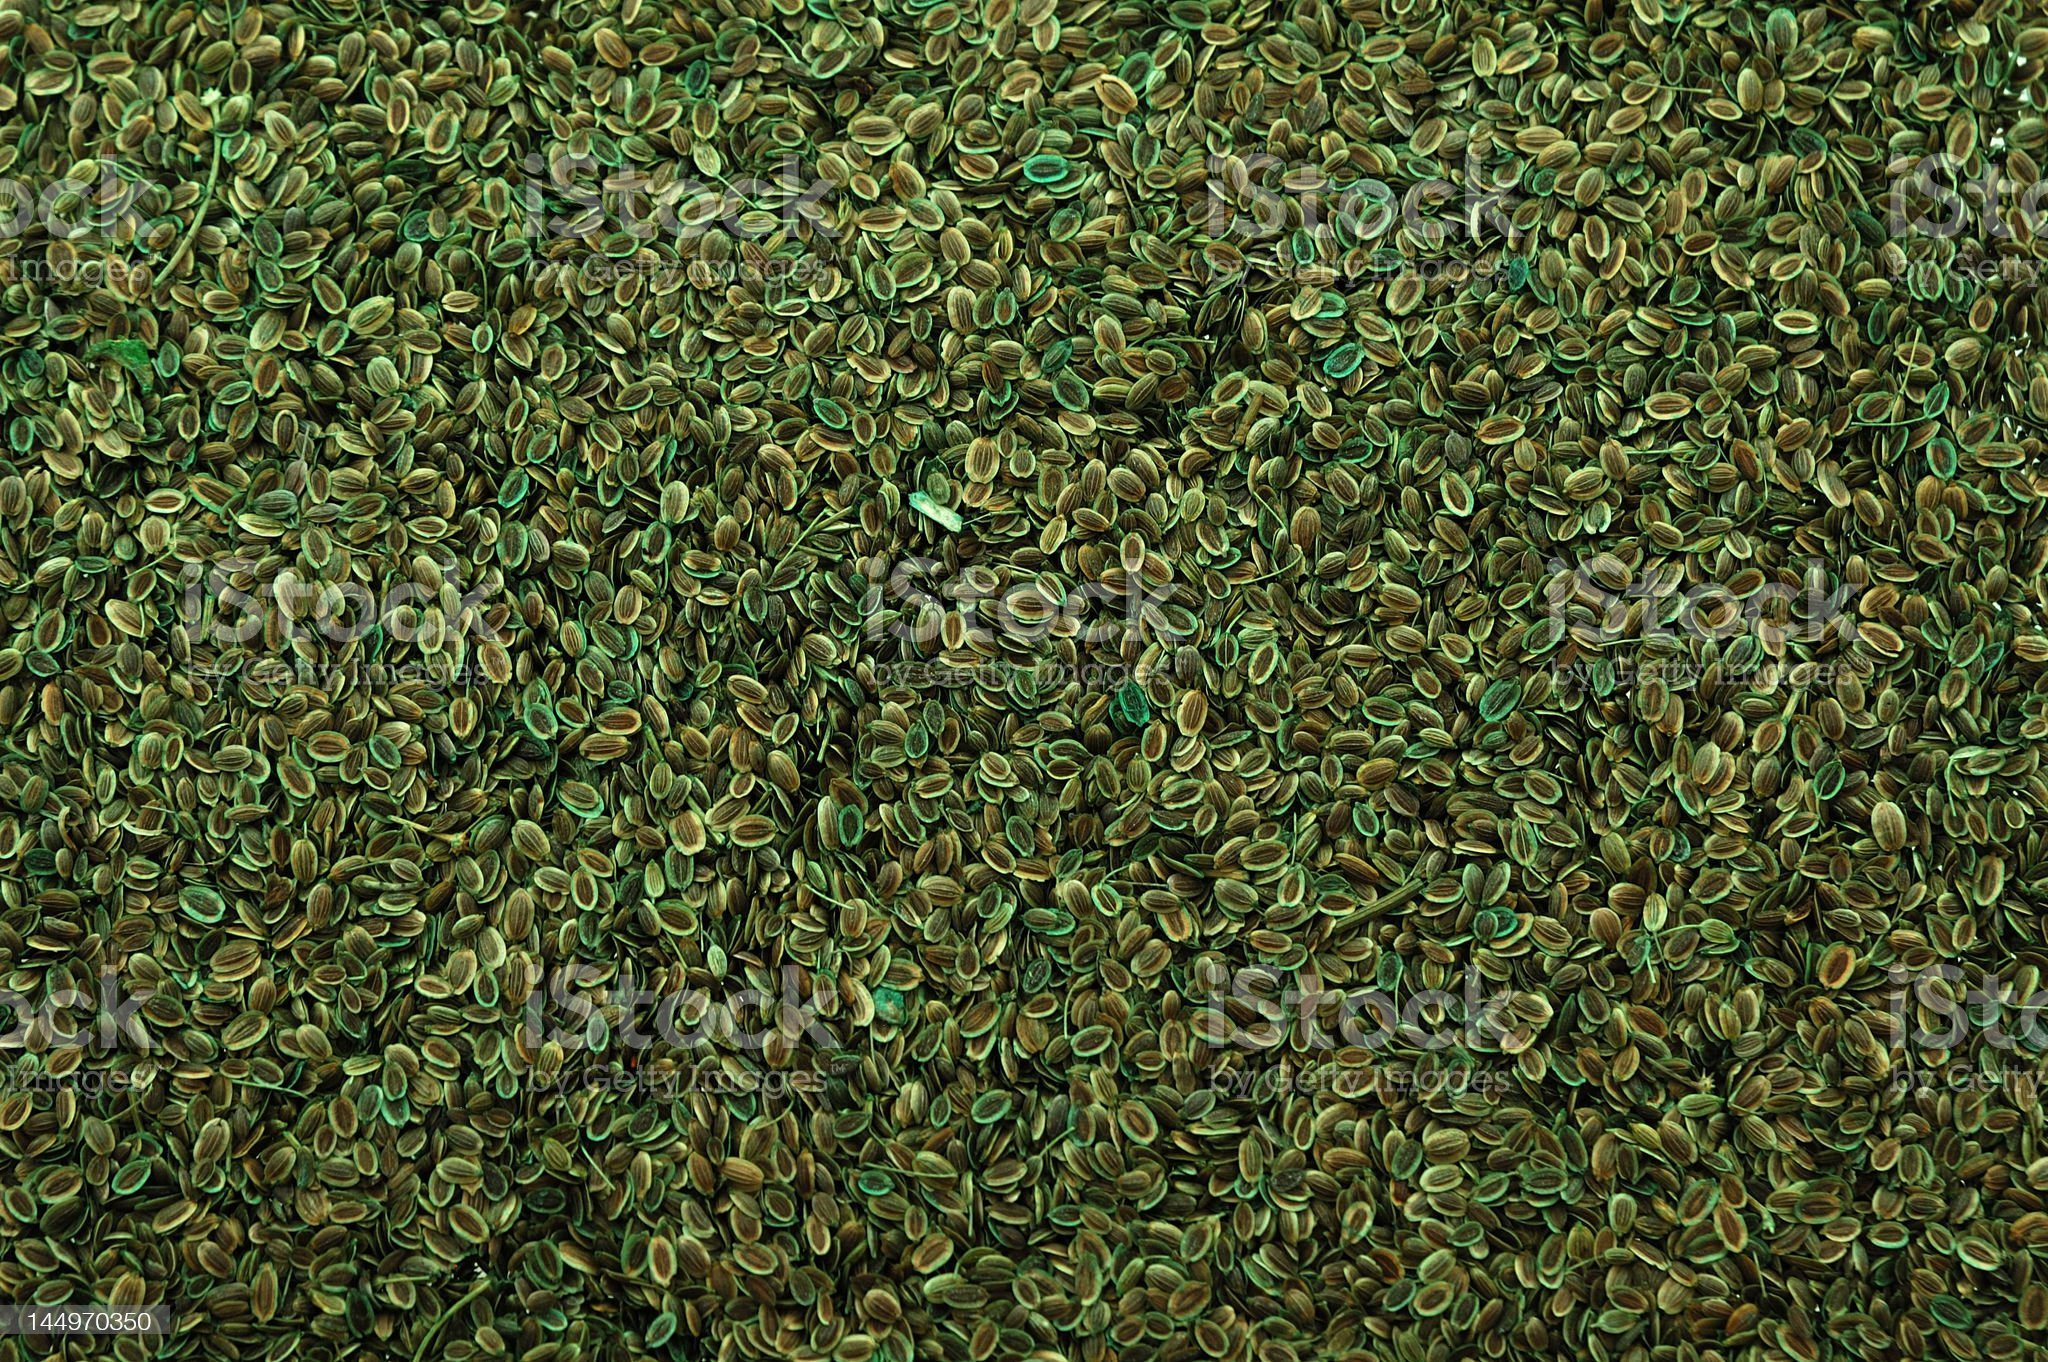 Seed Texture 8 royalty-free stock photo